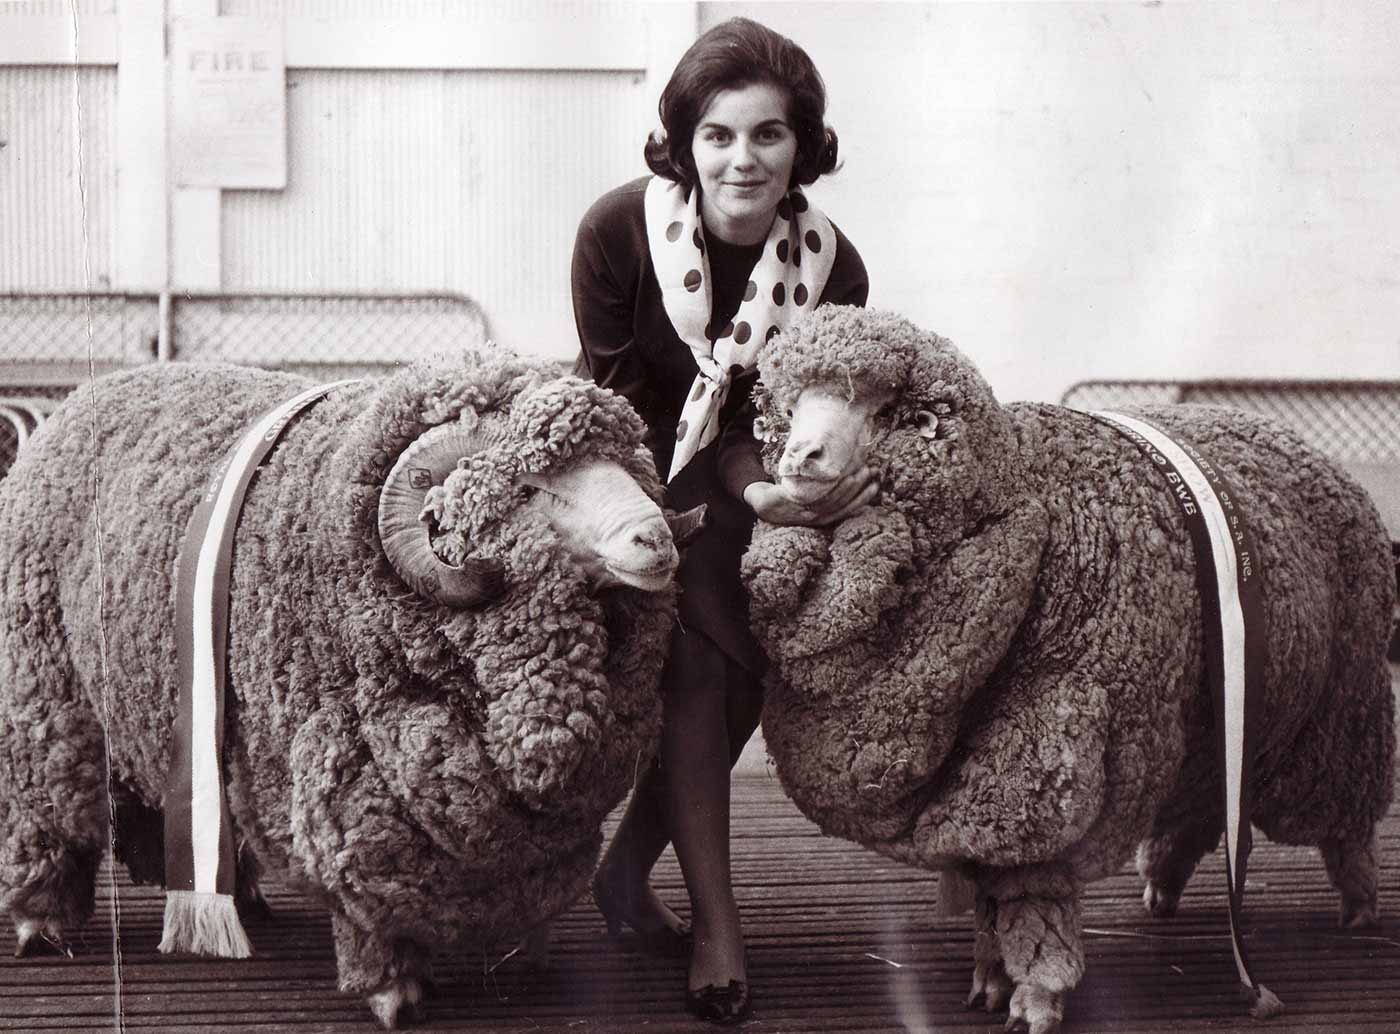 A woman standing between two large rams. The rams have prize ribbons draped over their backs. - click to view larger image